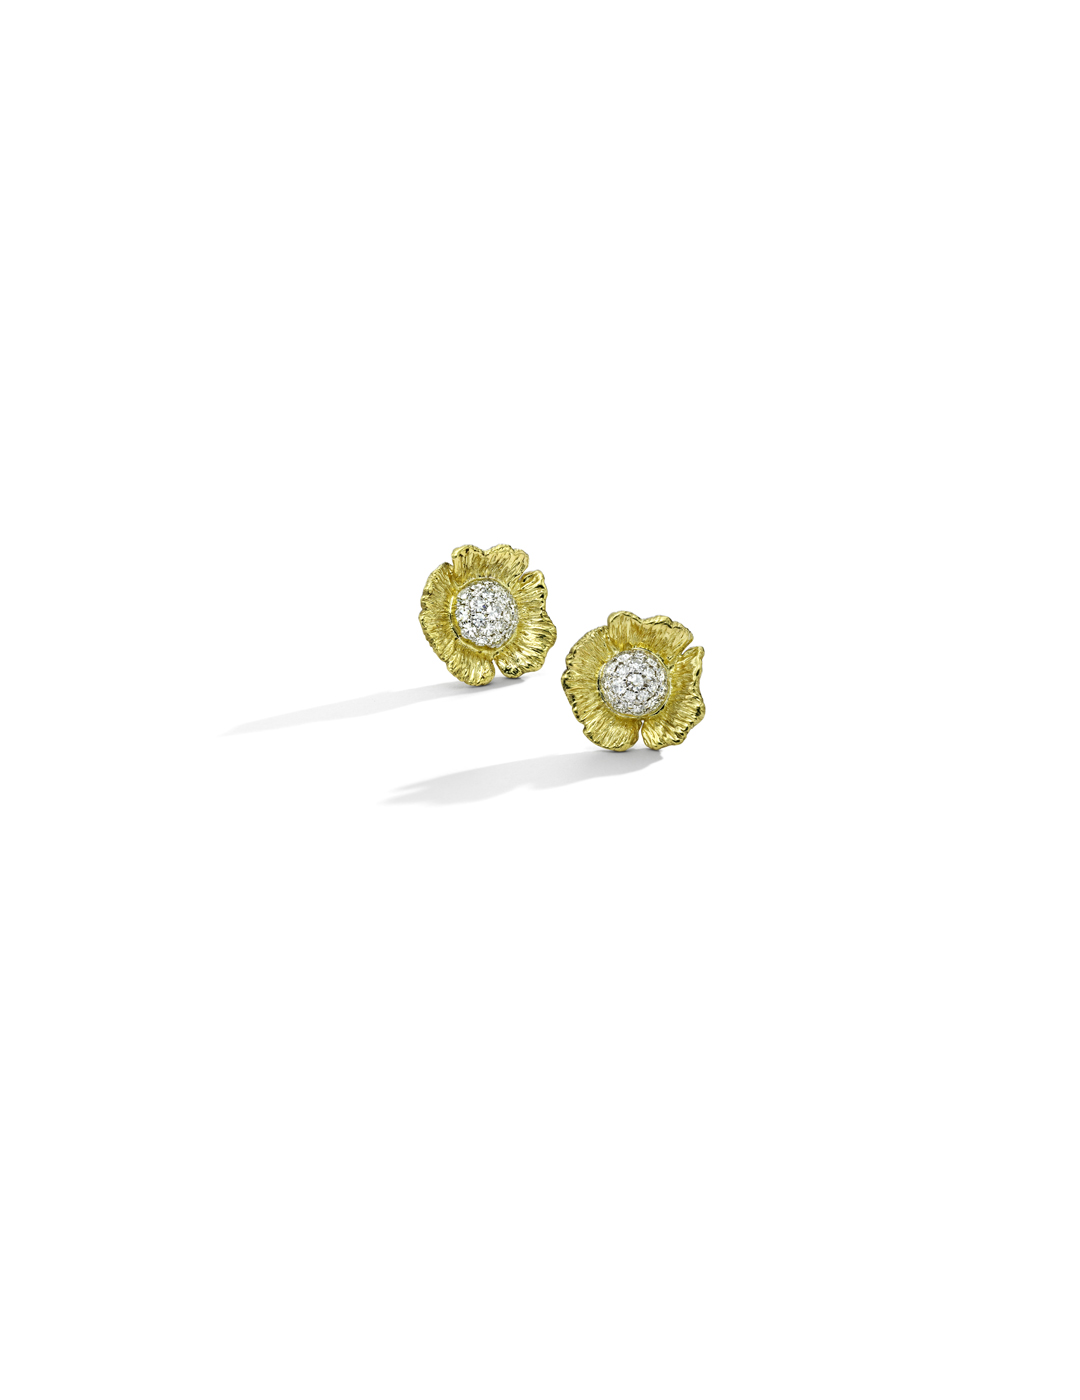 mish_products_earrings_Tiny-Poppy-Stud ER-1